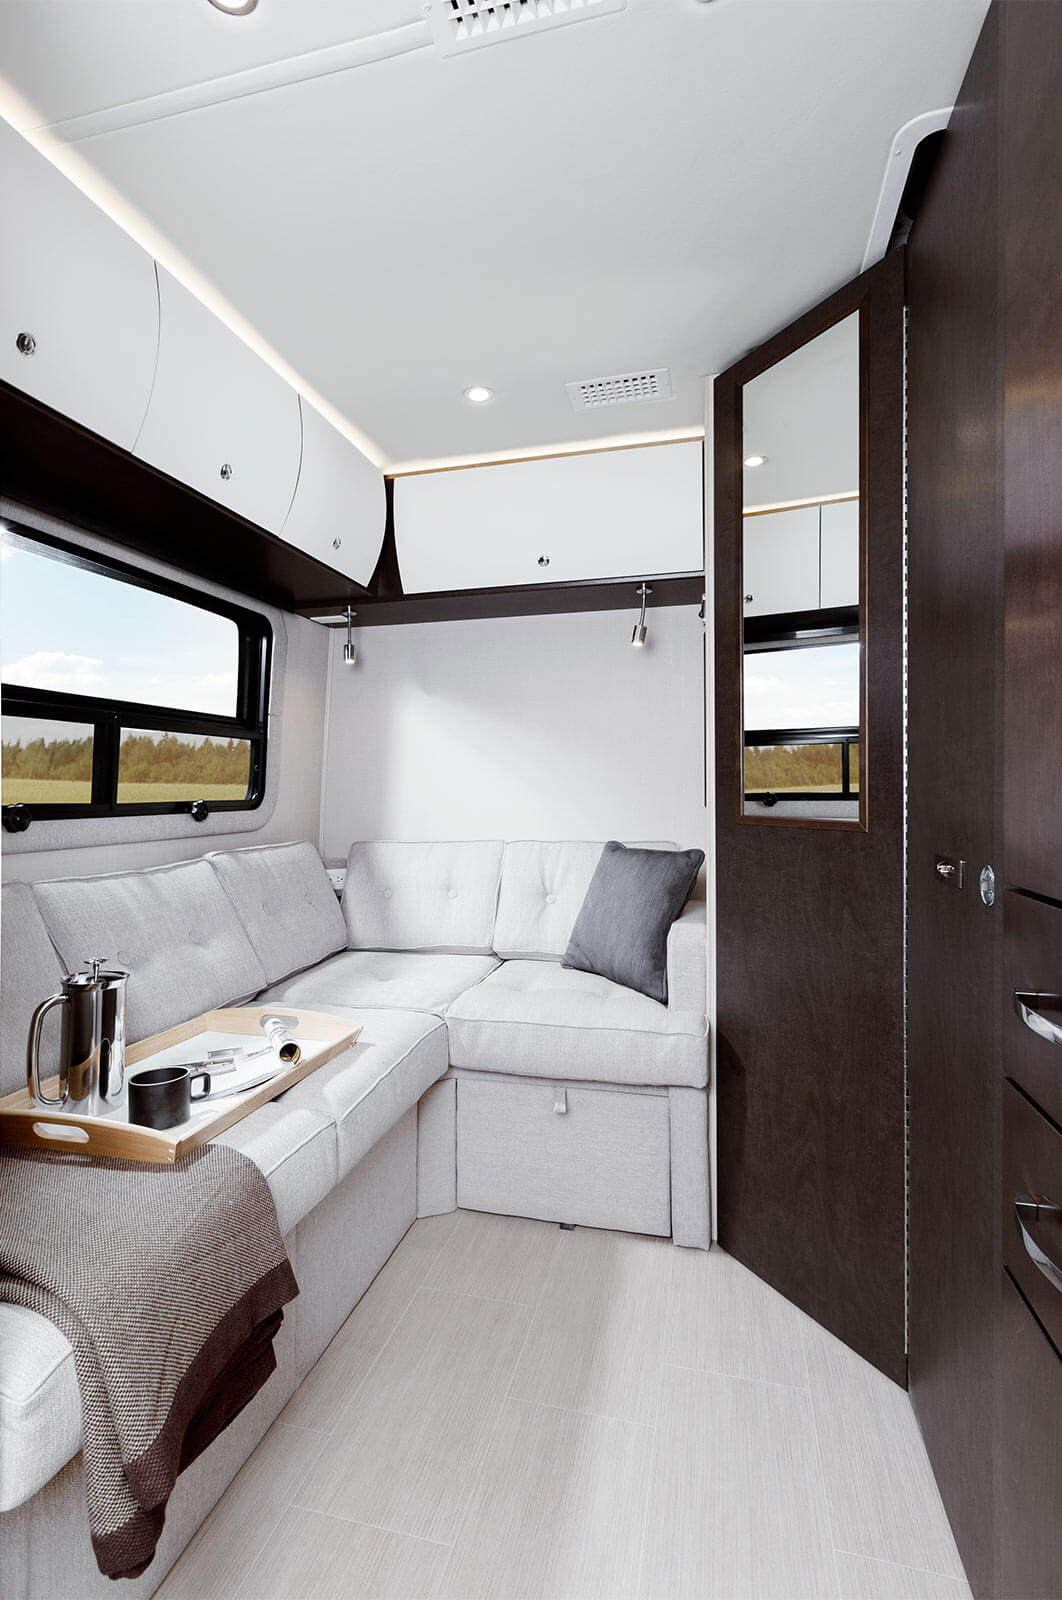 Leisure Travel Vans Transforms The Open Road With The All ...